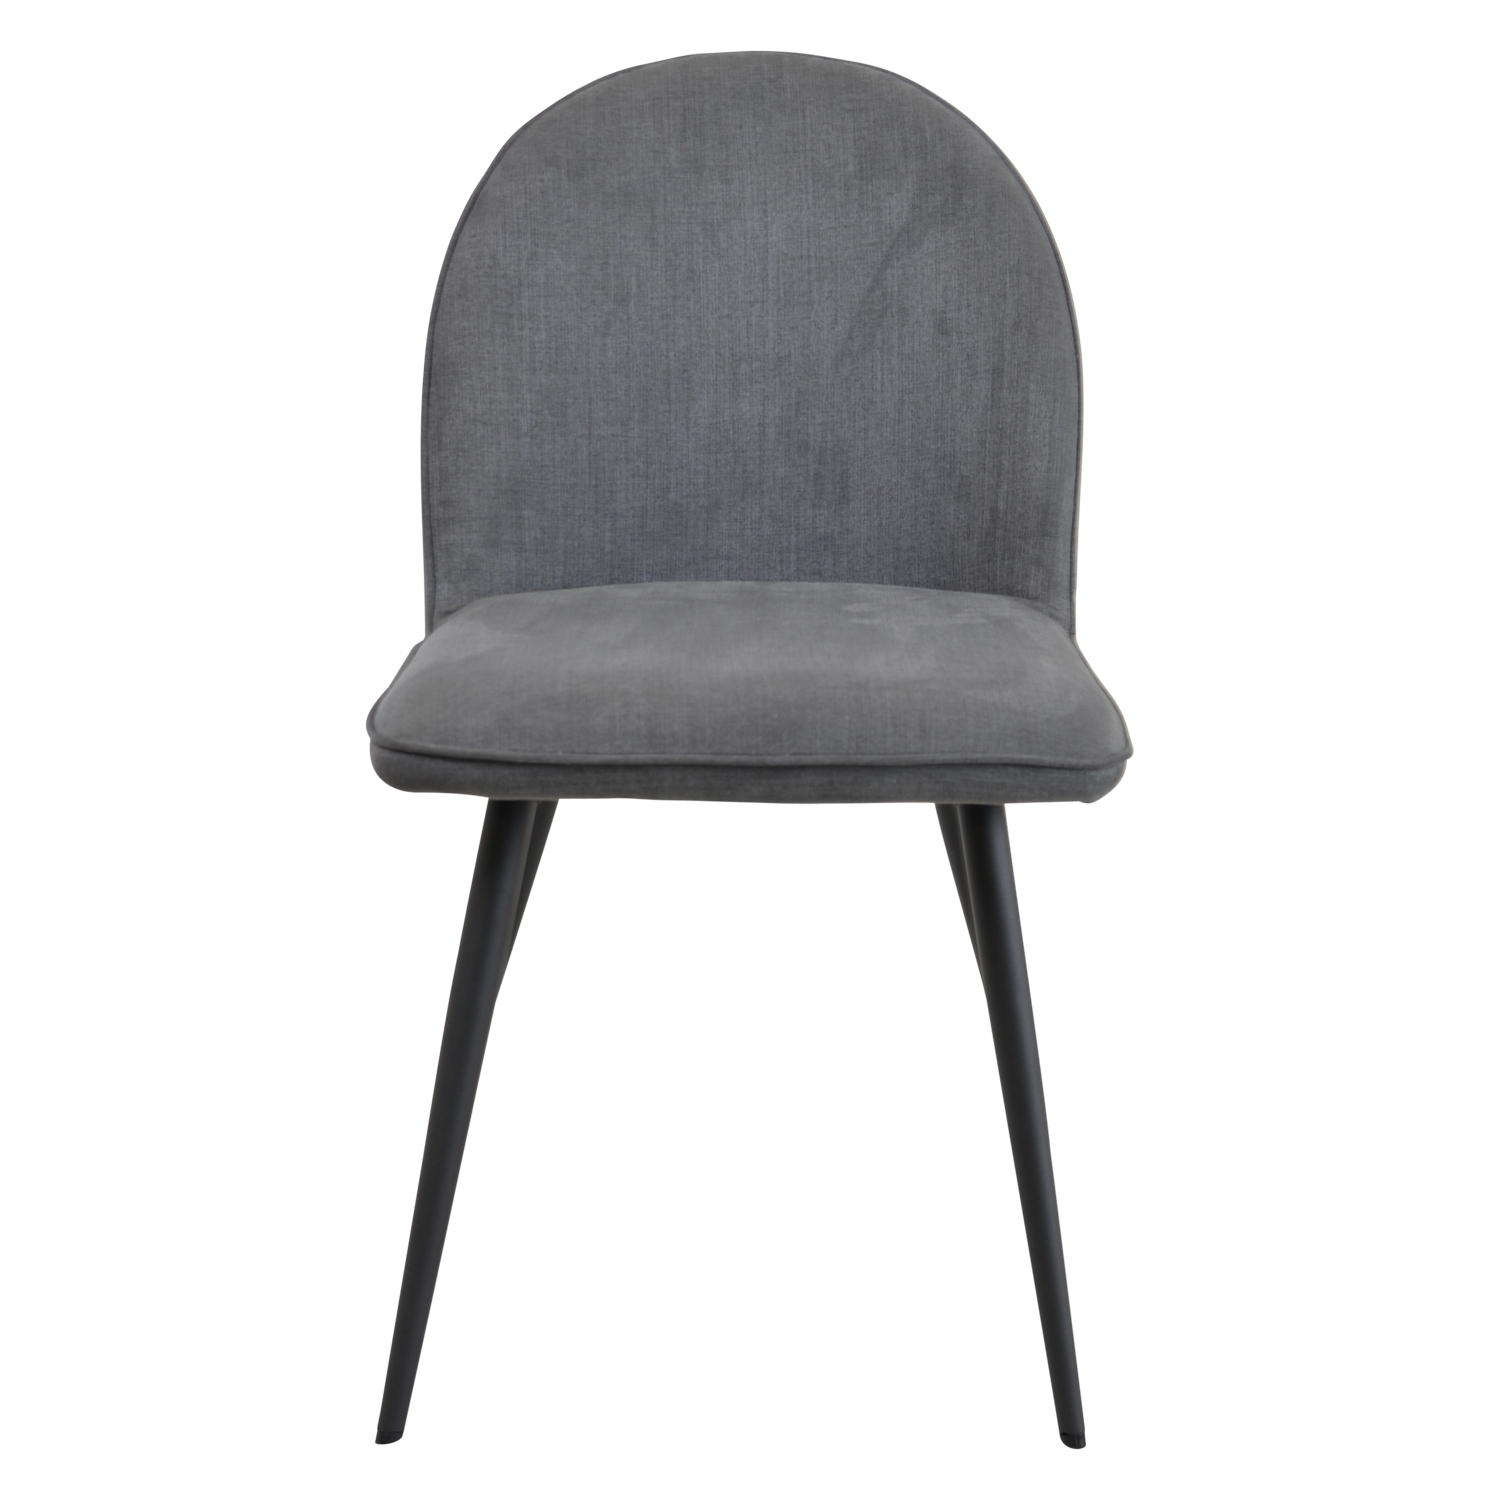 Image of Casa Adelaide Dining Chair, Grey